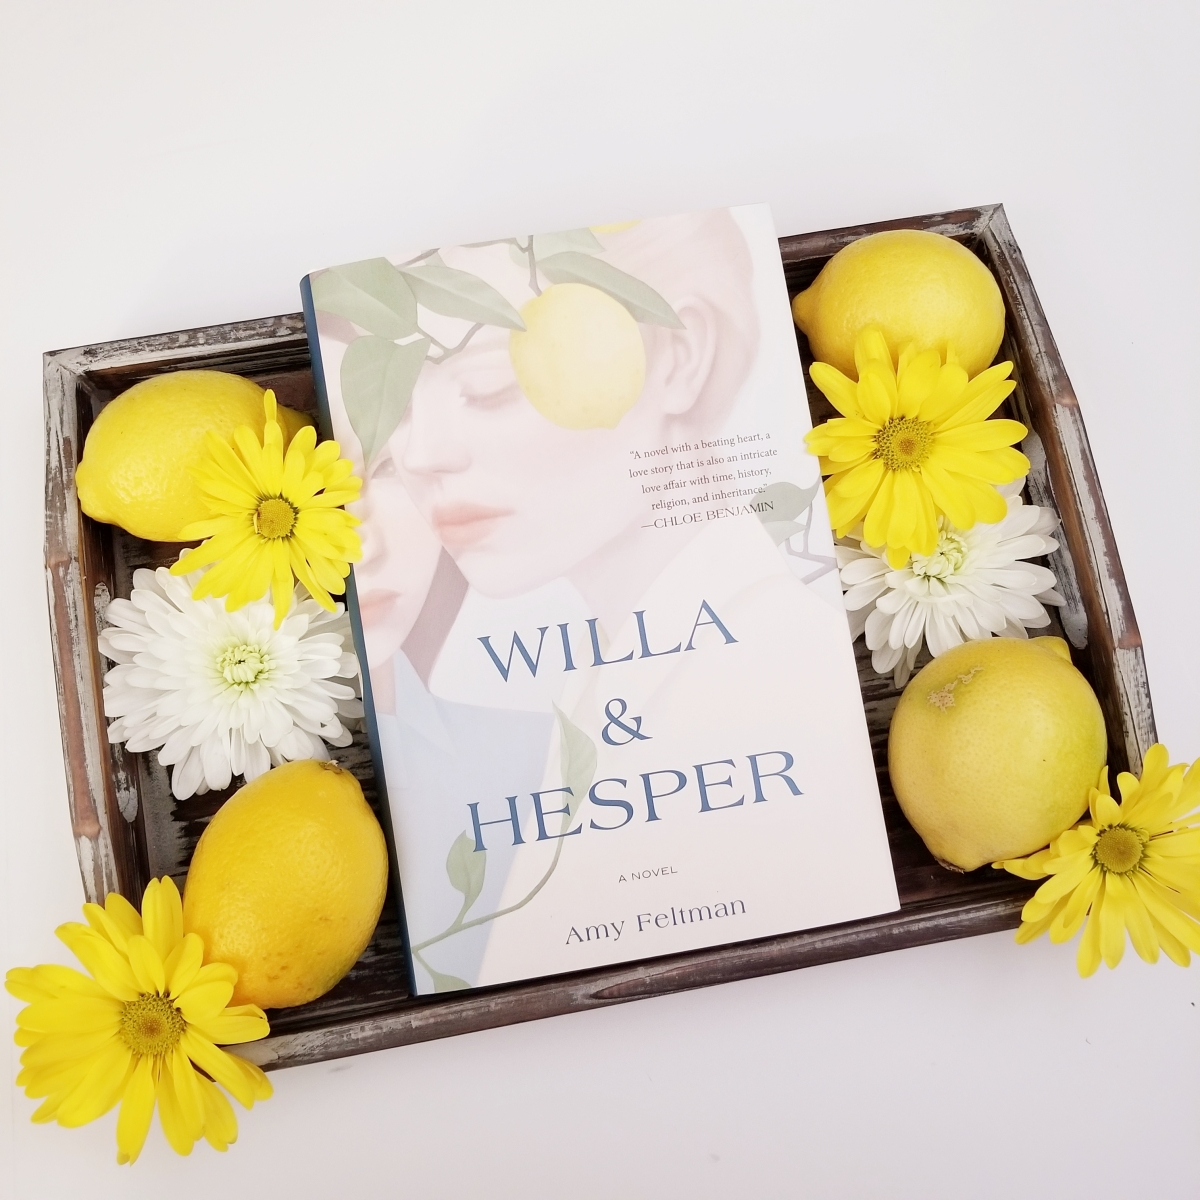 Willa & Hesper by Amy Feltman #bookreview #tarheelreader #thrwilla @amy_feltman @grandcentralpub #willaandhesper #bookgiveaway